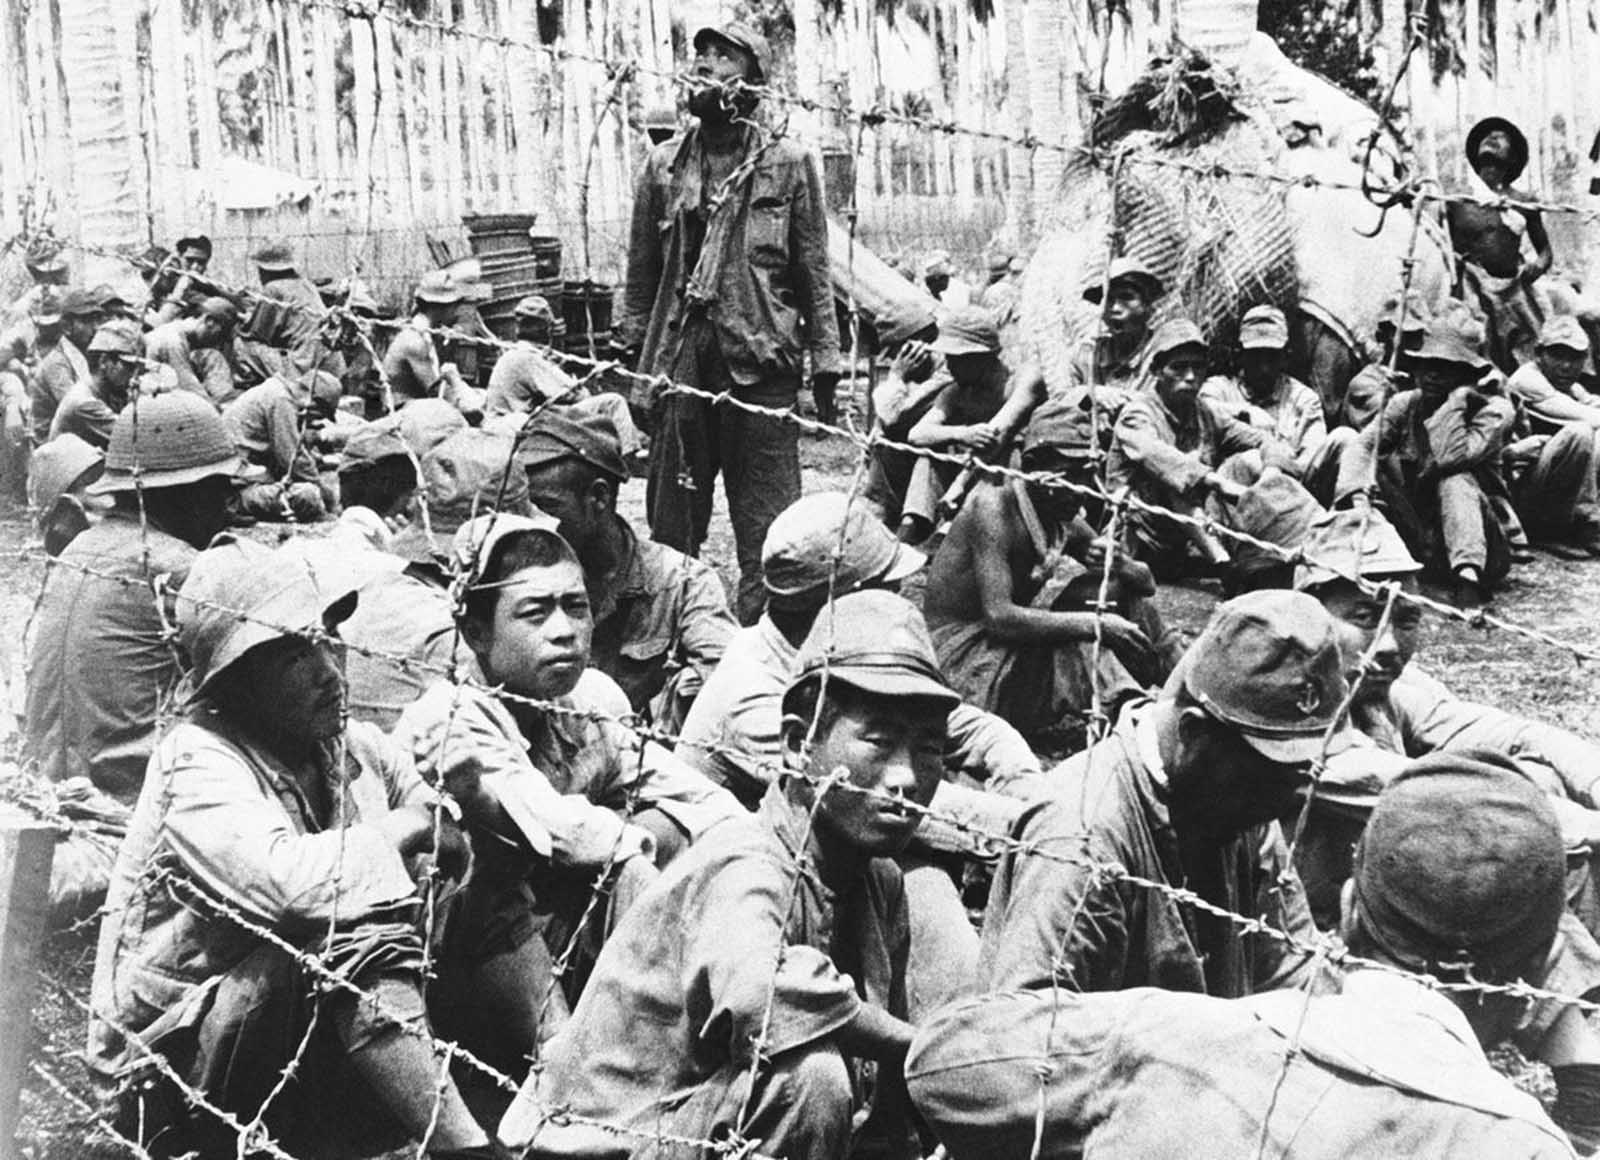 These Japanese prisoners were among those captured by U.S. forces on Guadalcanal Island in the Solomon Islands, shown November 5, 1942.